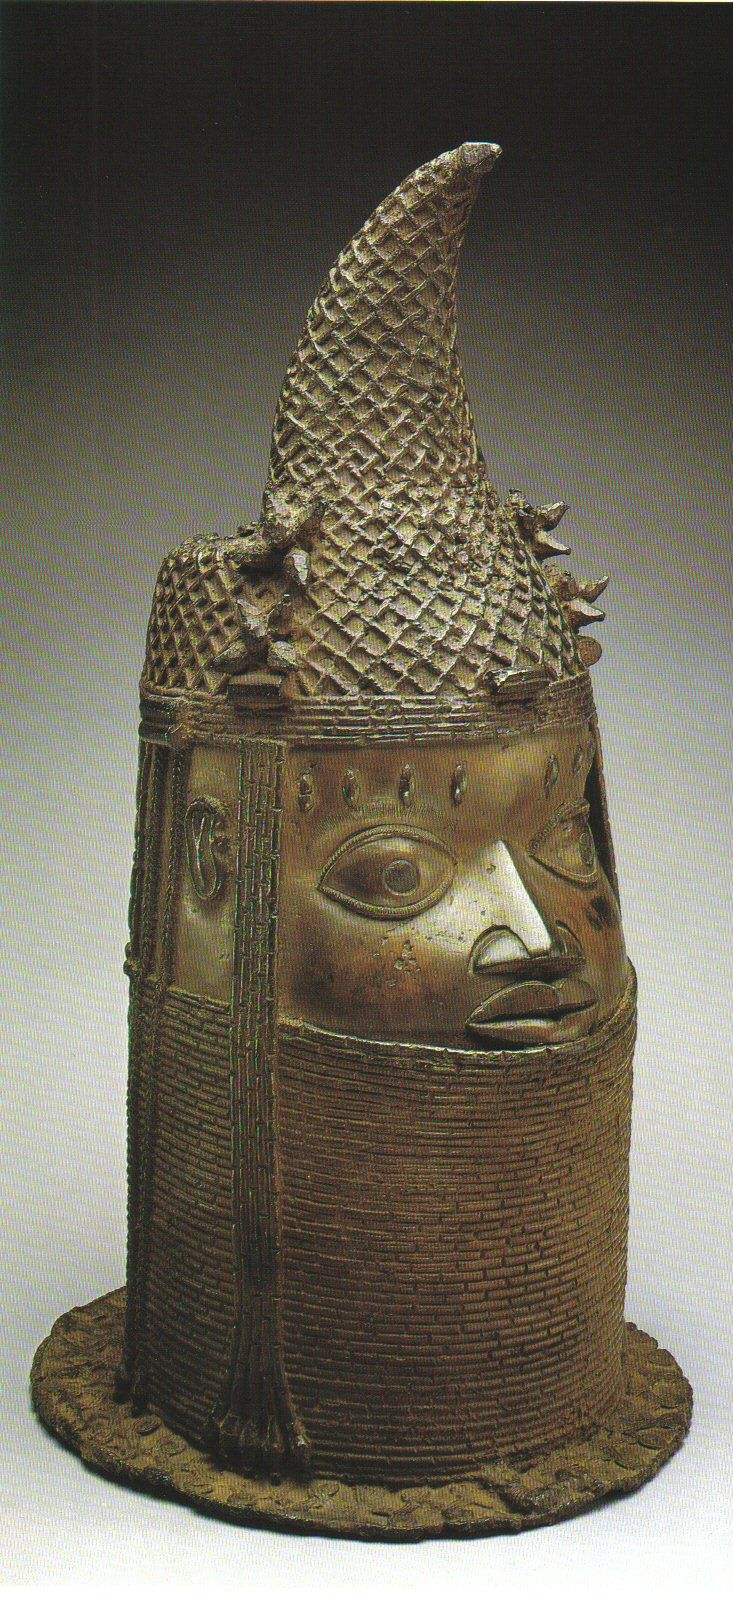 art of benin When the royal palace of benin was sacked by british forces in 1897, the marauders were surprised to find a huge quantity of elaborate works of art, the sophistication of which surpassed any notion of what they were expecting to find in the forested area of southern nigeria.